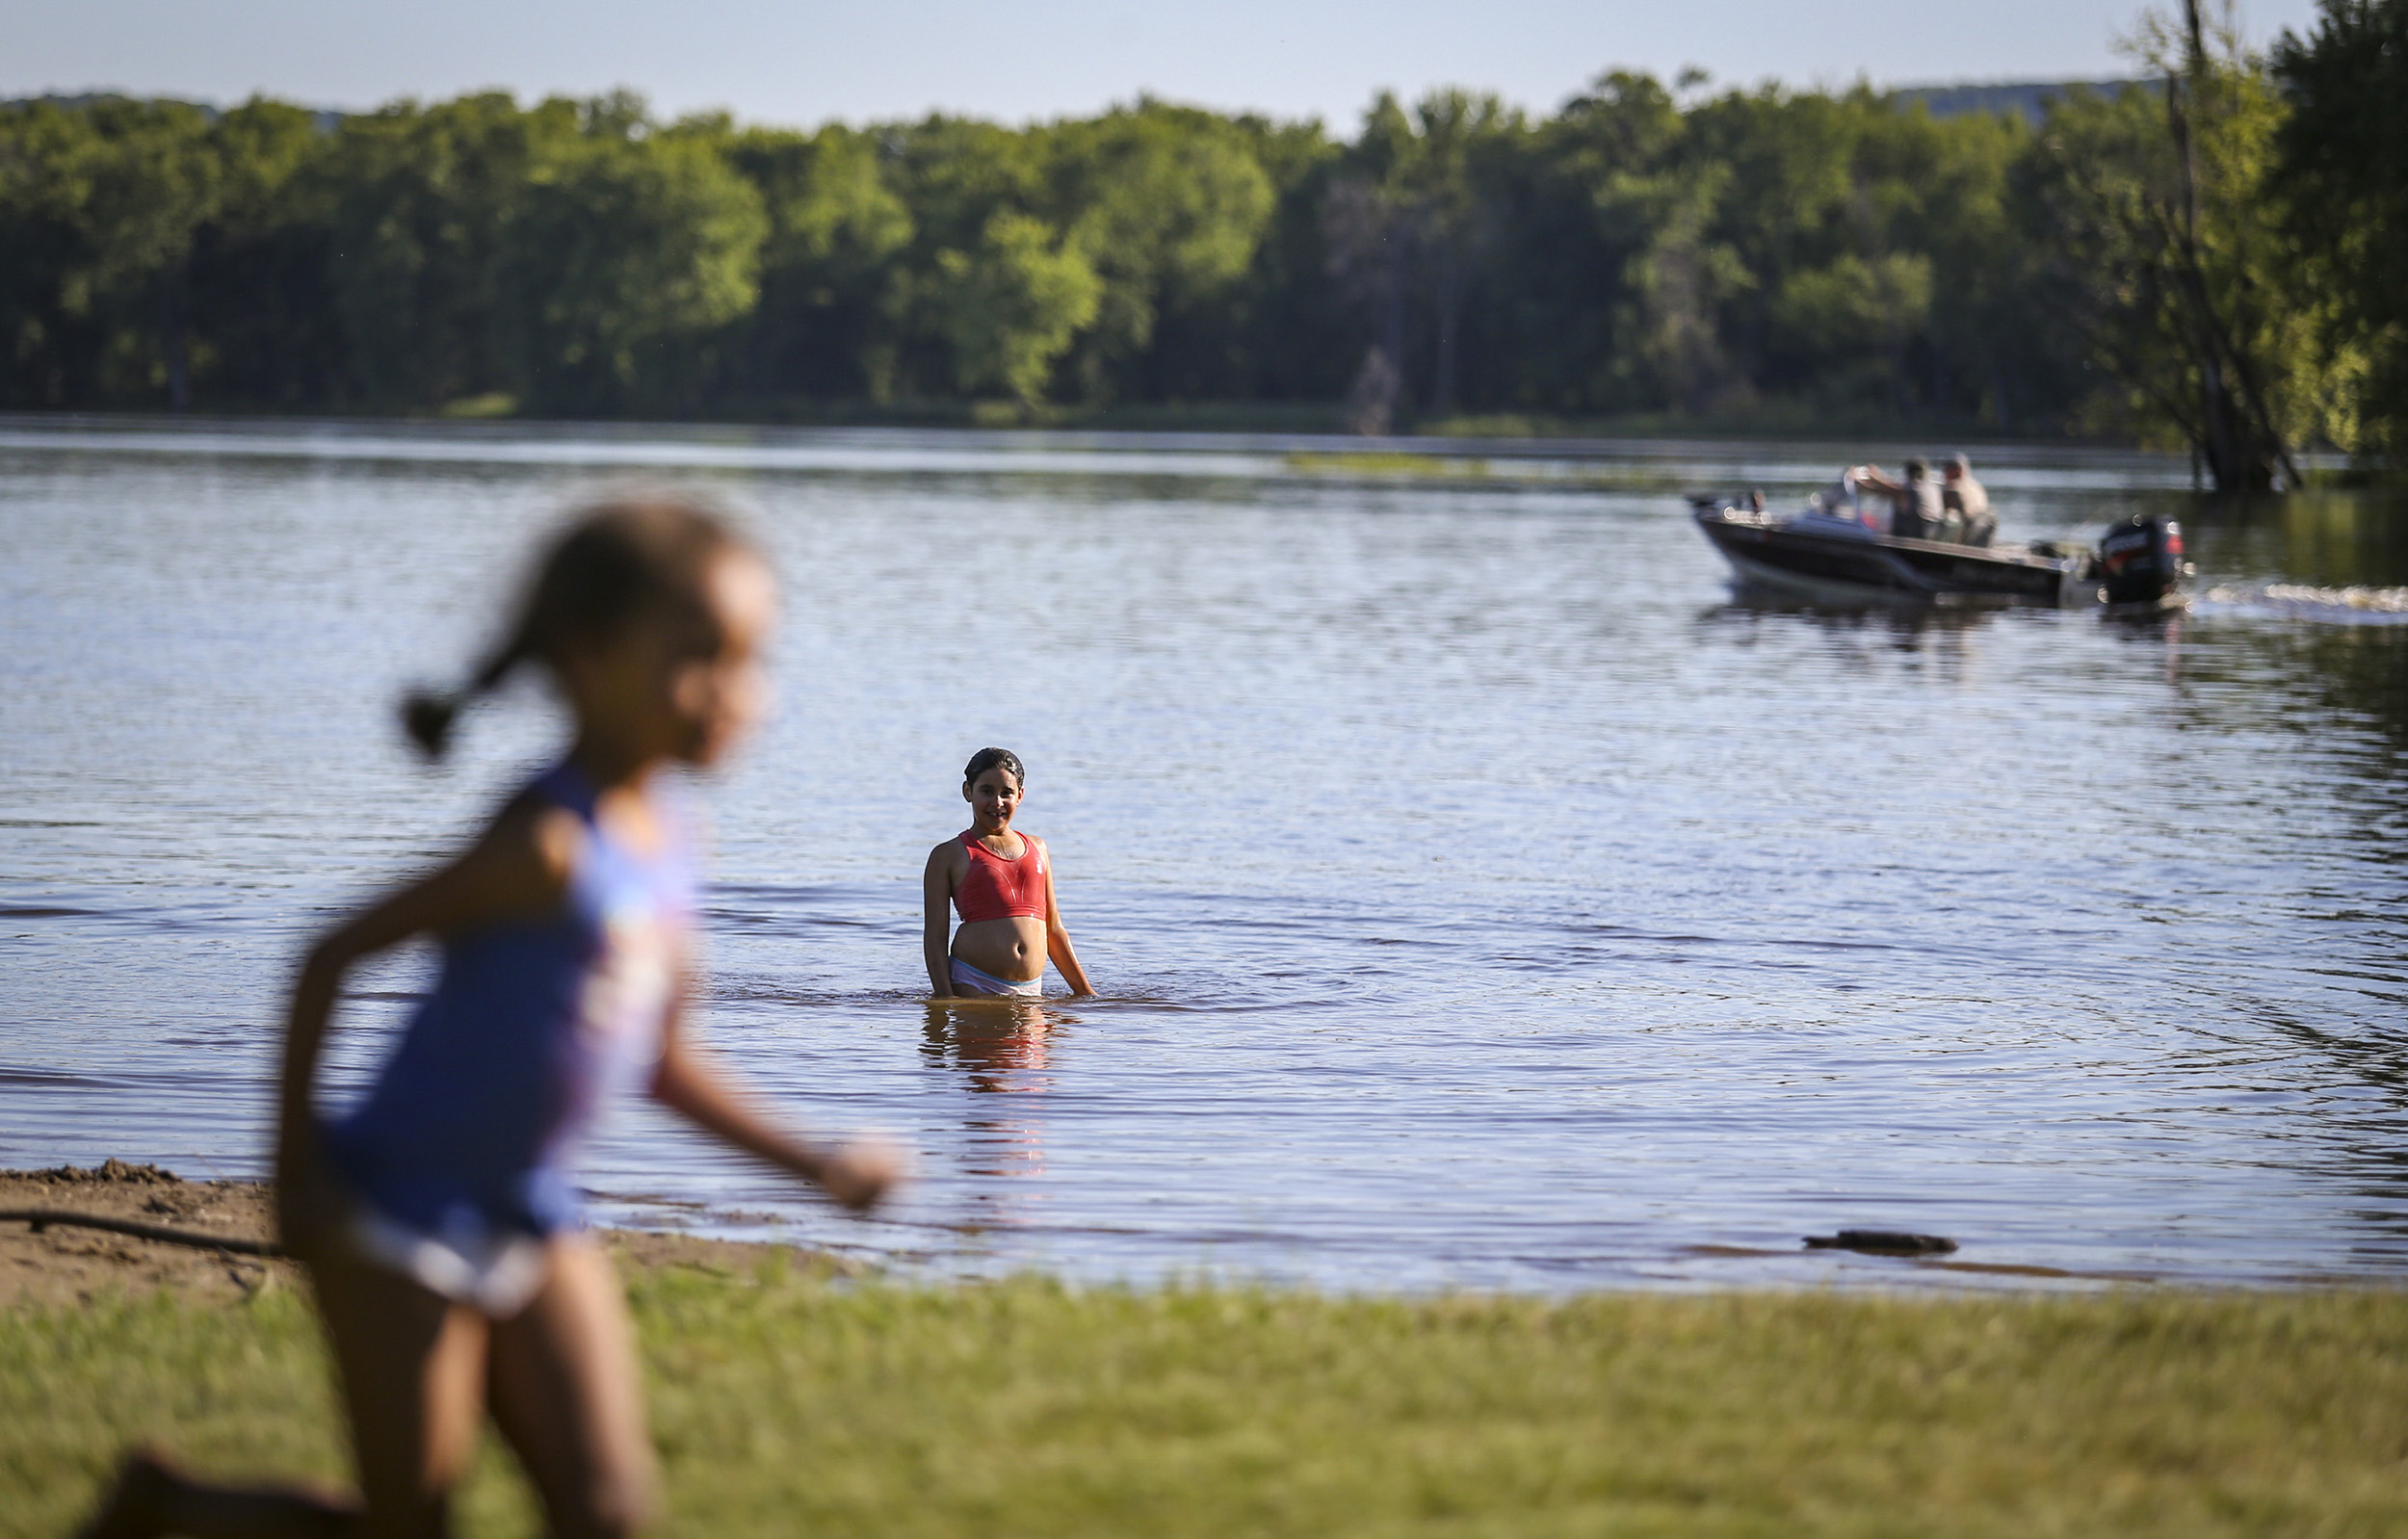 Haley Gonzales, 10, of Lansing, Iowa, looks to her family sitting at a picnic table after showing off a handstand in the Blackhawk Park swimming area in De Soto, Wisconsin, Tuesday, June 6, 2017.